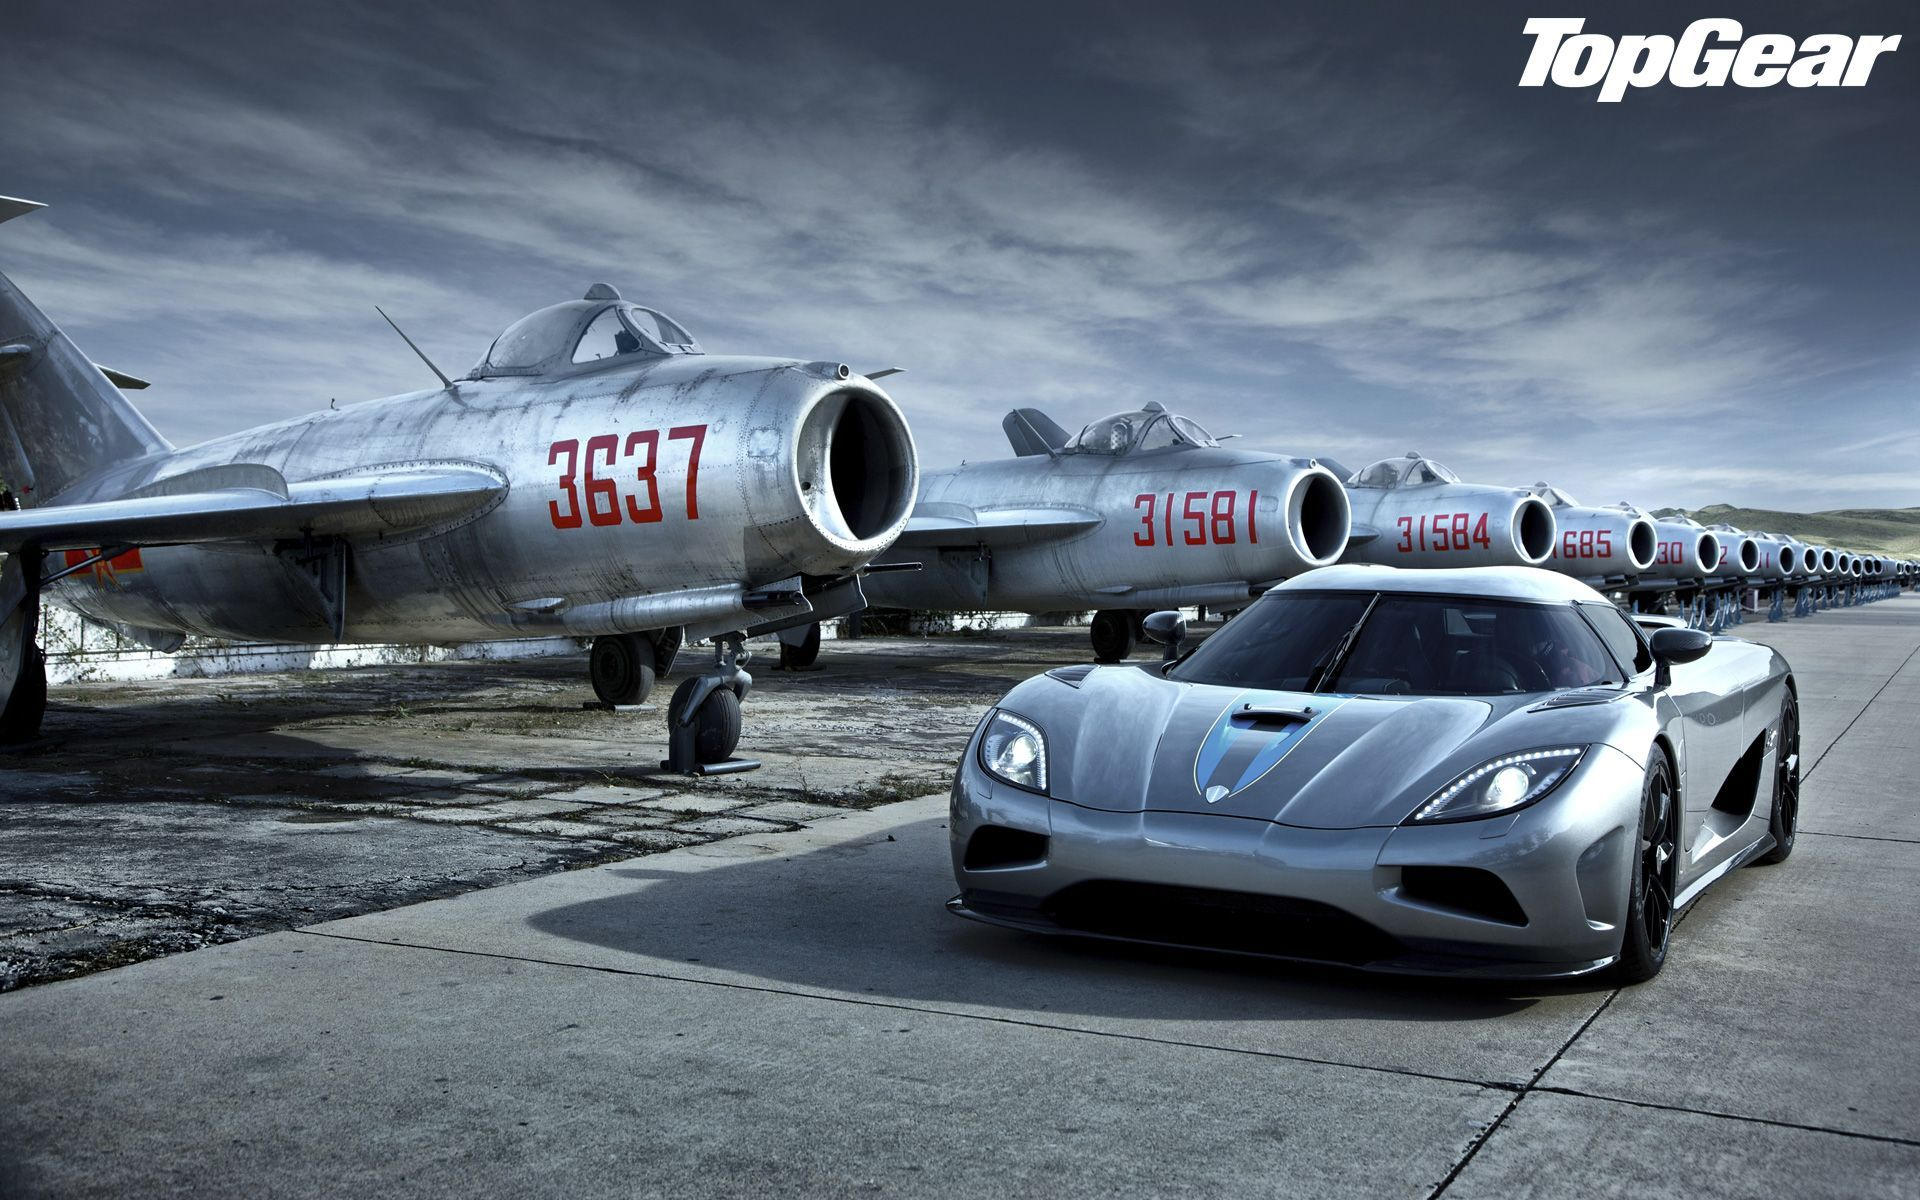 Top Gear Wallpapers Wallpaper Cave Koenigsegg Car Tv Shows Super Sport Cars